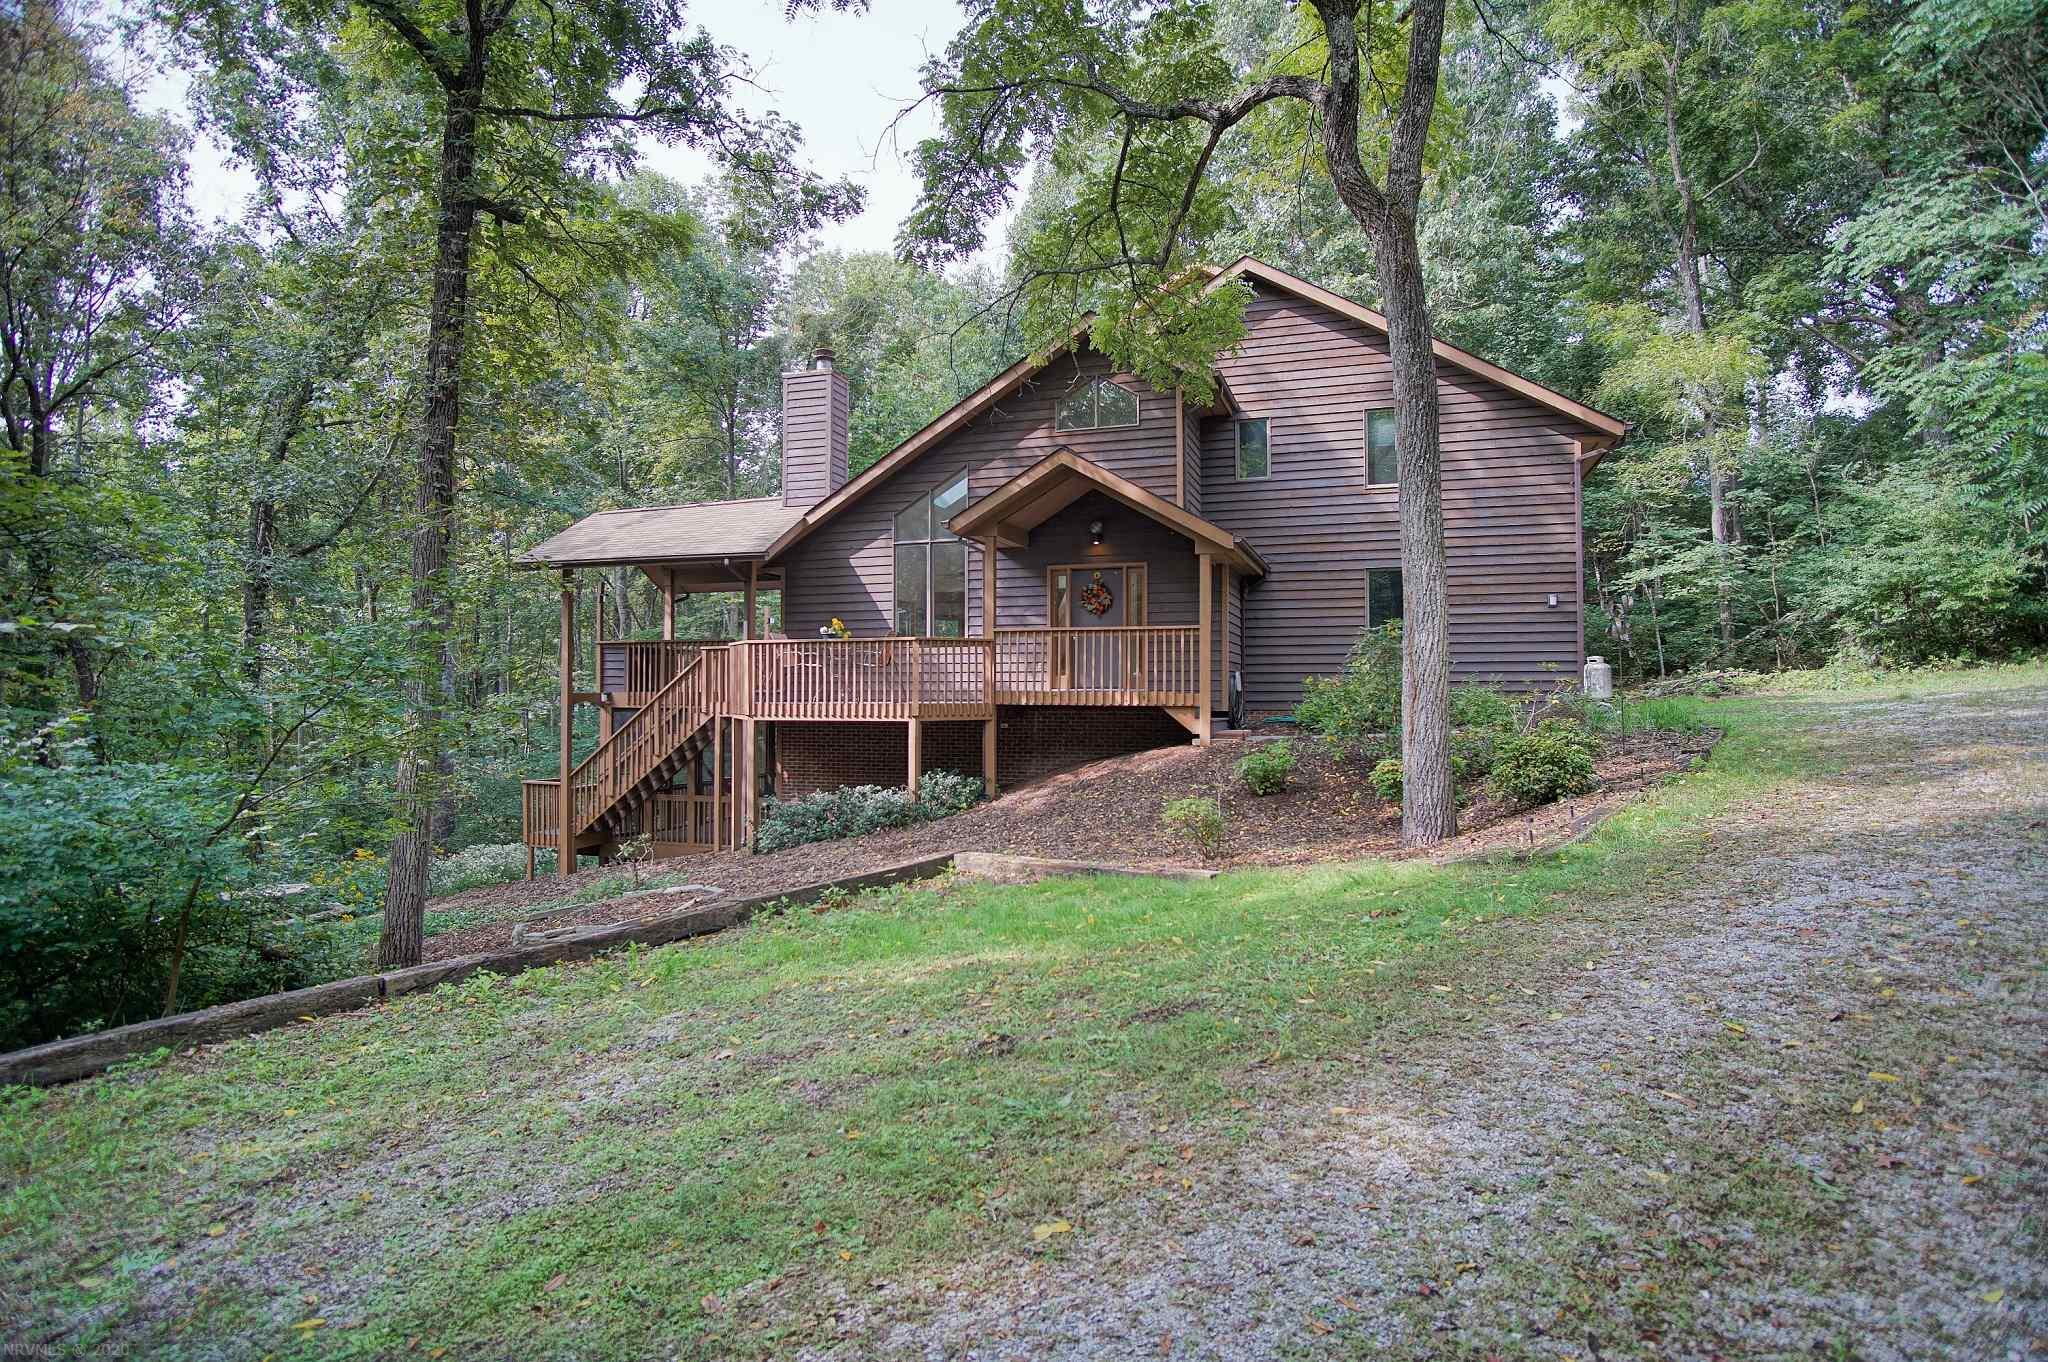 "Bright and spacious 4 BR, 3.5 bath home on over 5 tranquil acres just 20 minutes from downtown Blacksburg.  This contemporary cottage in the unmatched beauty of Catawba Valley offers multiple living areas including the main level living room with new hardwood floors and the basement ""away"" space/family room with new paint that walks out to a private patio from which you can enjoy in tranquility the beauty of nature in the surrounding mature hardwood forest.  The main level flows naturally from the kitchen with custom cherry cabinets and new appliances to the dining and living areas and outdoor spaces including a spacious screened porch. Upstairs hosts 4 bedrooms including one designed with acoustics suitable for a music room.  Two car garage, fenced back yard and paddock and large barn that can function as housing for animals or a shop/vehicle storage area.  Quality construction by Shelter Alternatives with many updates.  Don't miss this beautiful home!"